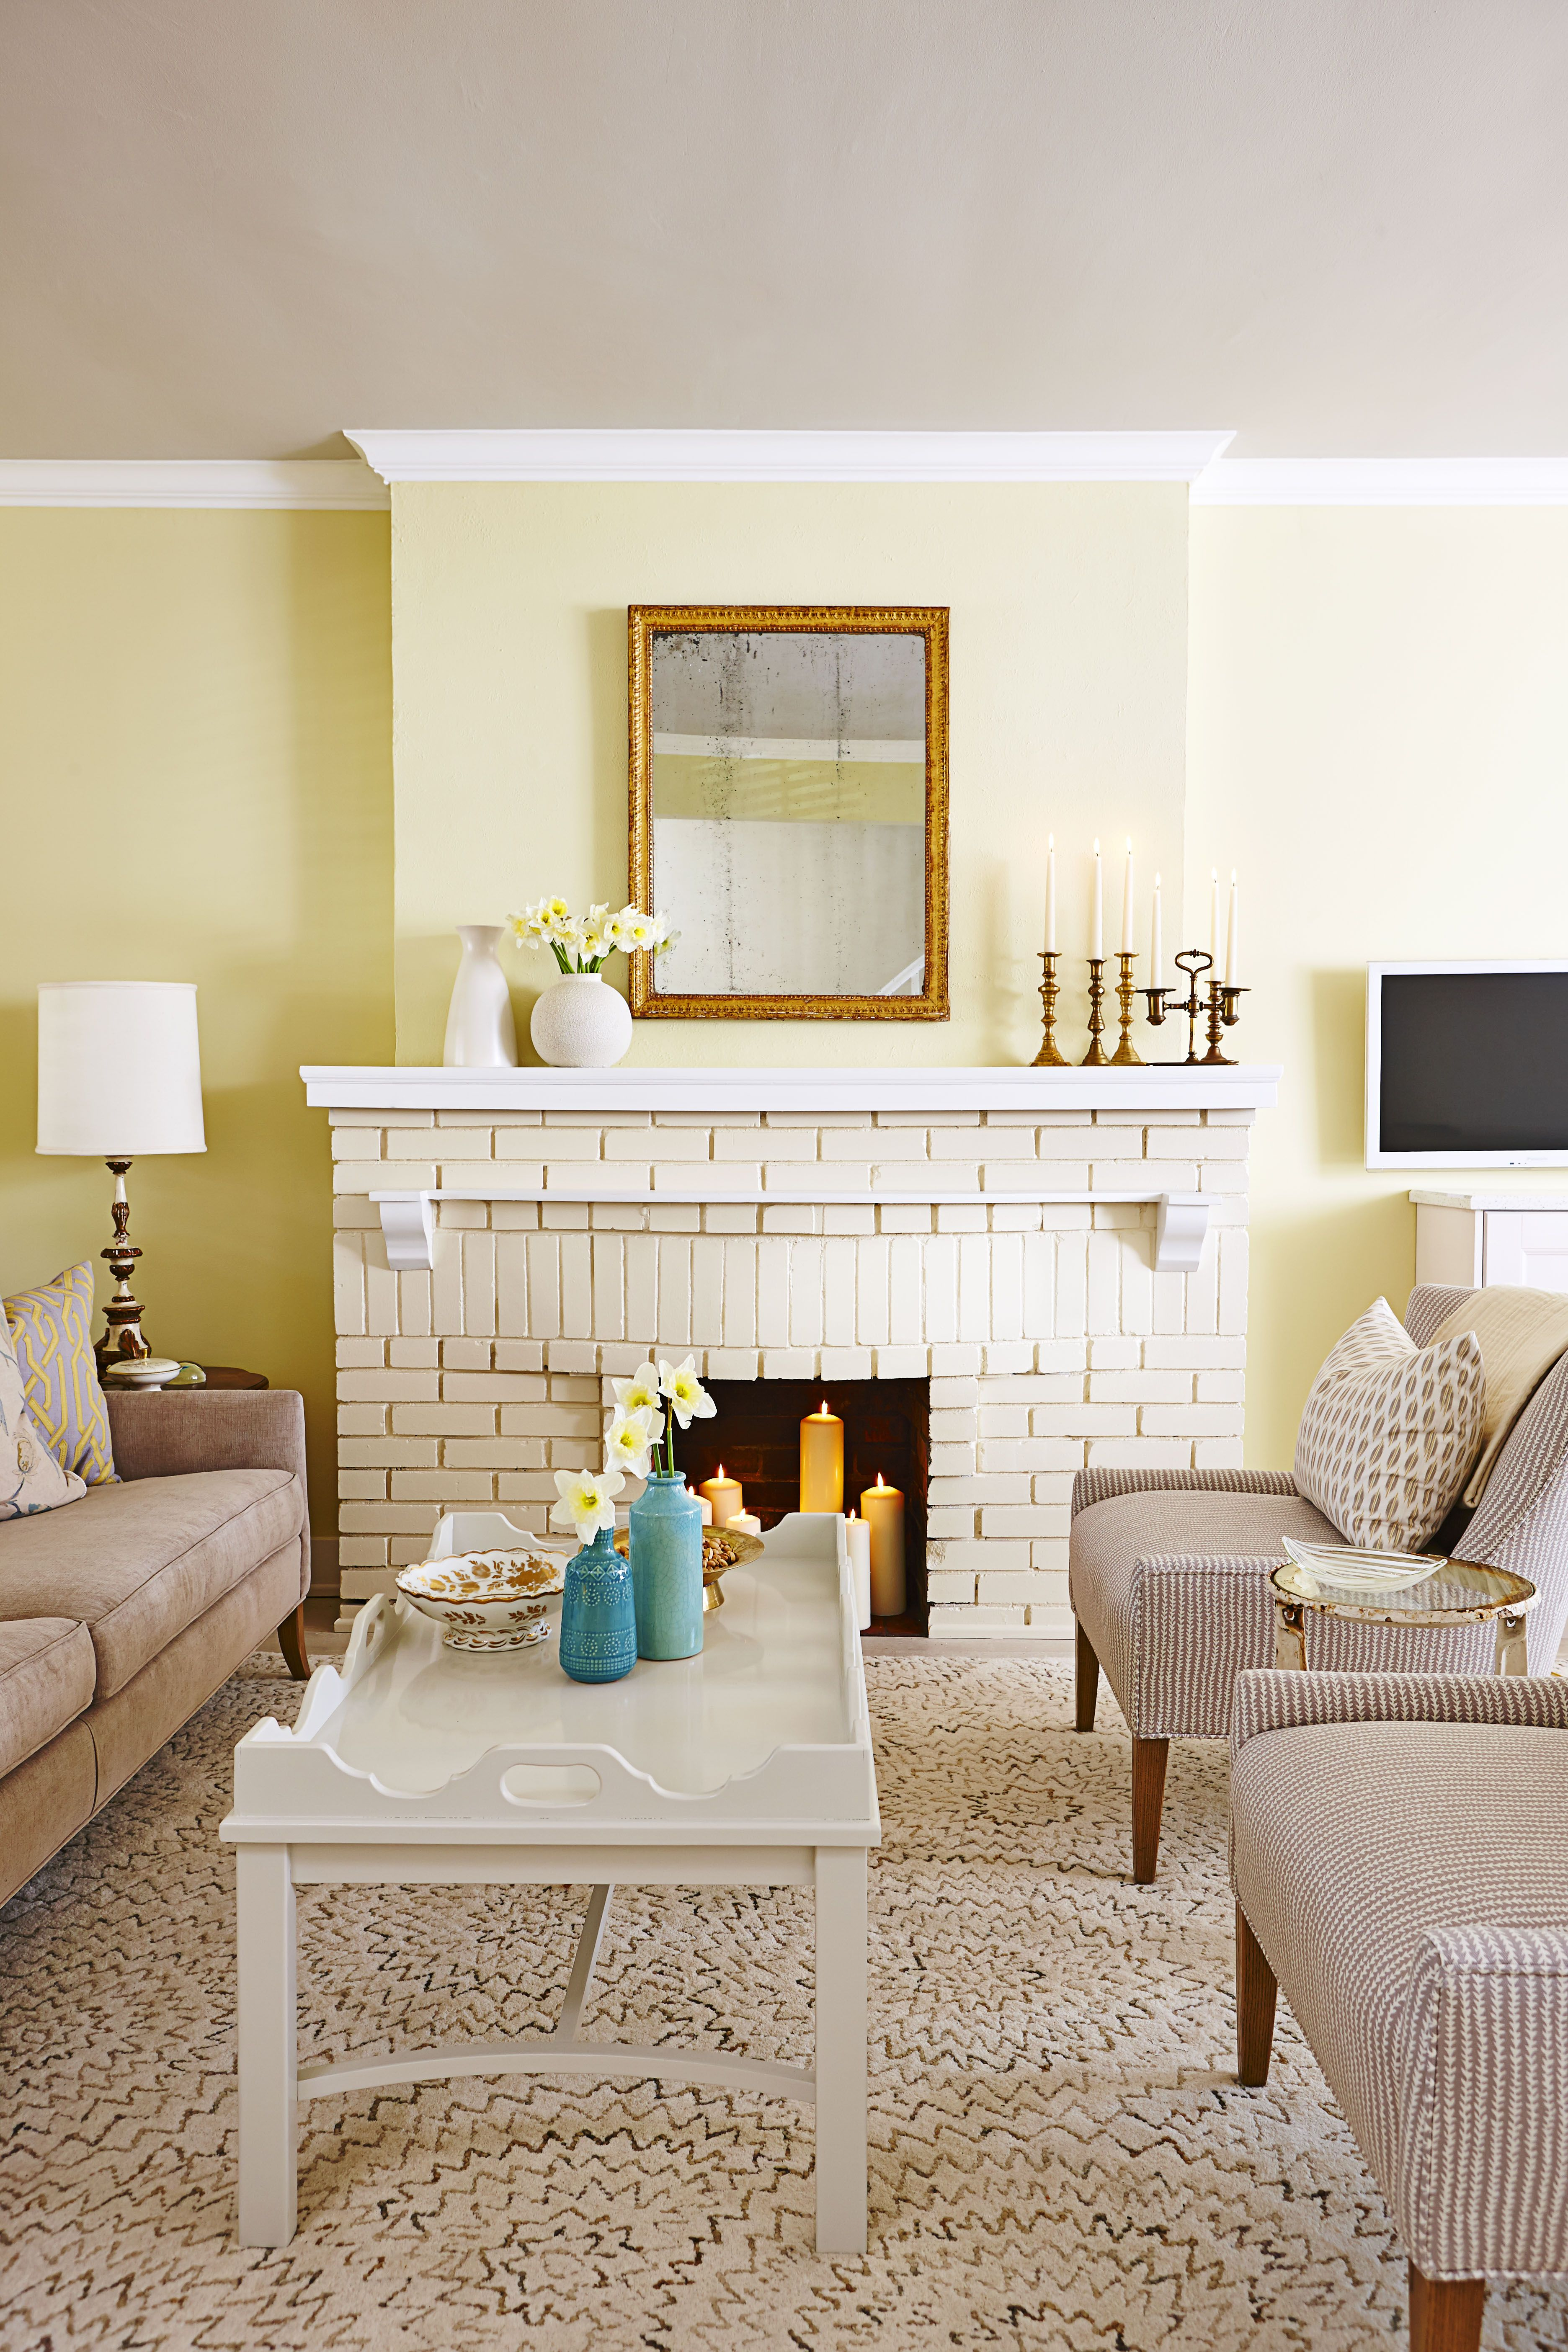 Sunny Painted Brick Fireplace & 18 Fireplace Decorating Ideas - Best Fireplace Design Inspiration